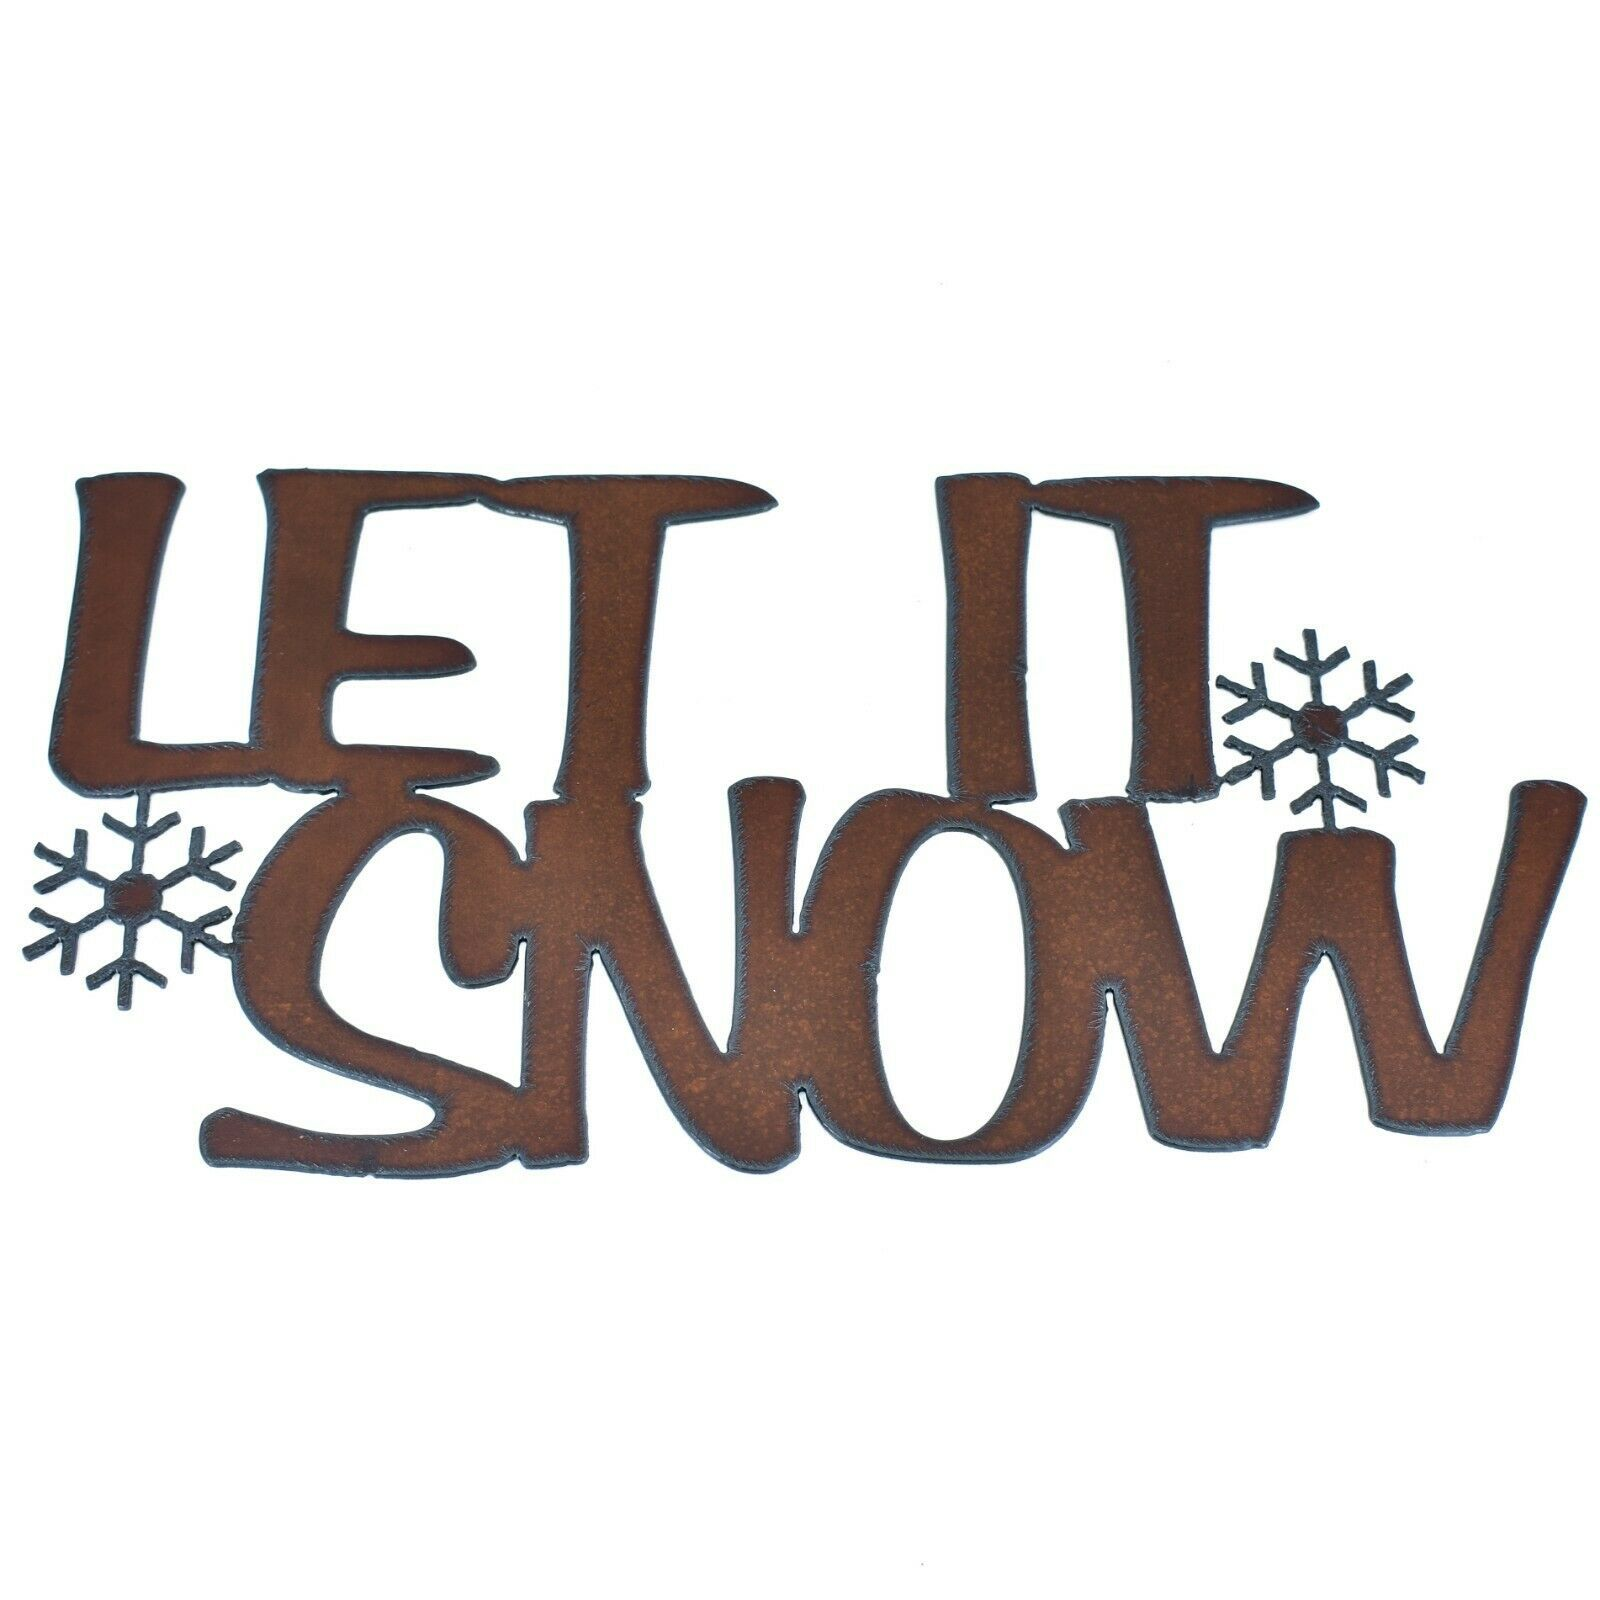 "Primary image for Rustic Rusted Patina Iron Metal Cutout Sign ""Let it Snow"" Winter 13"" Wall Decor"